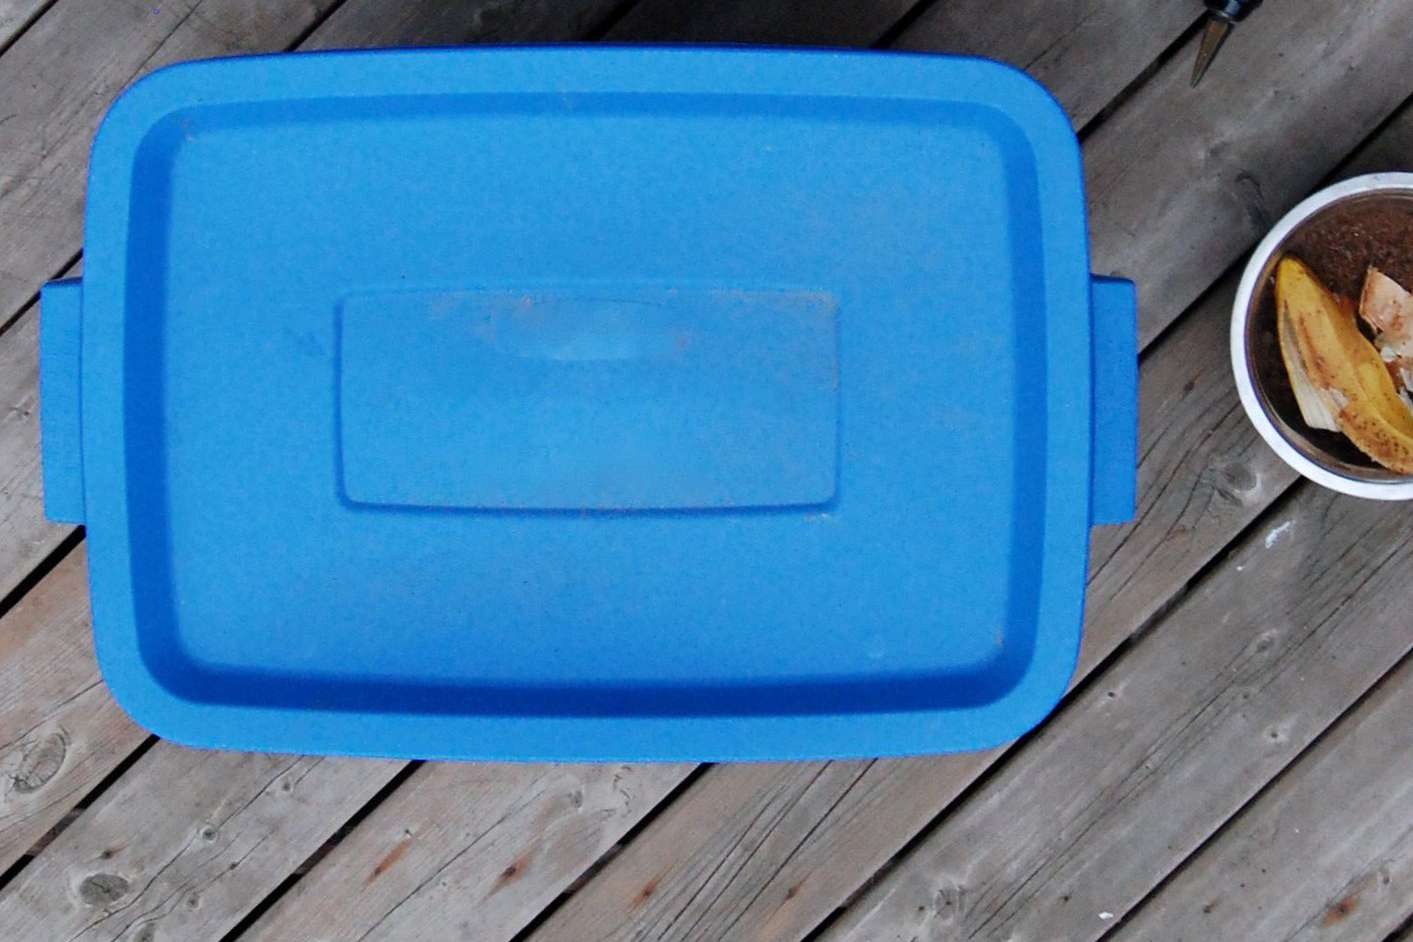 Choosing a container for your compost bin